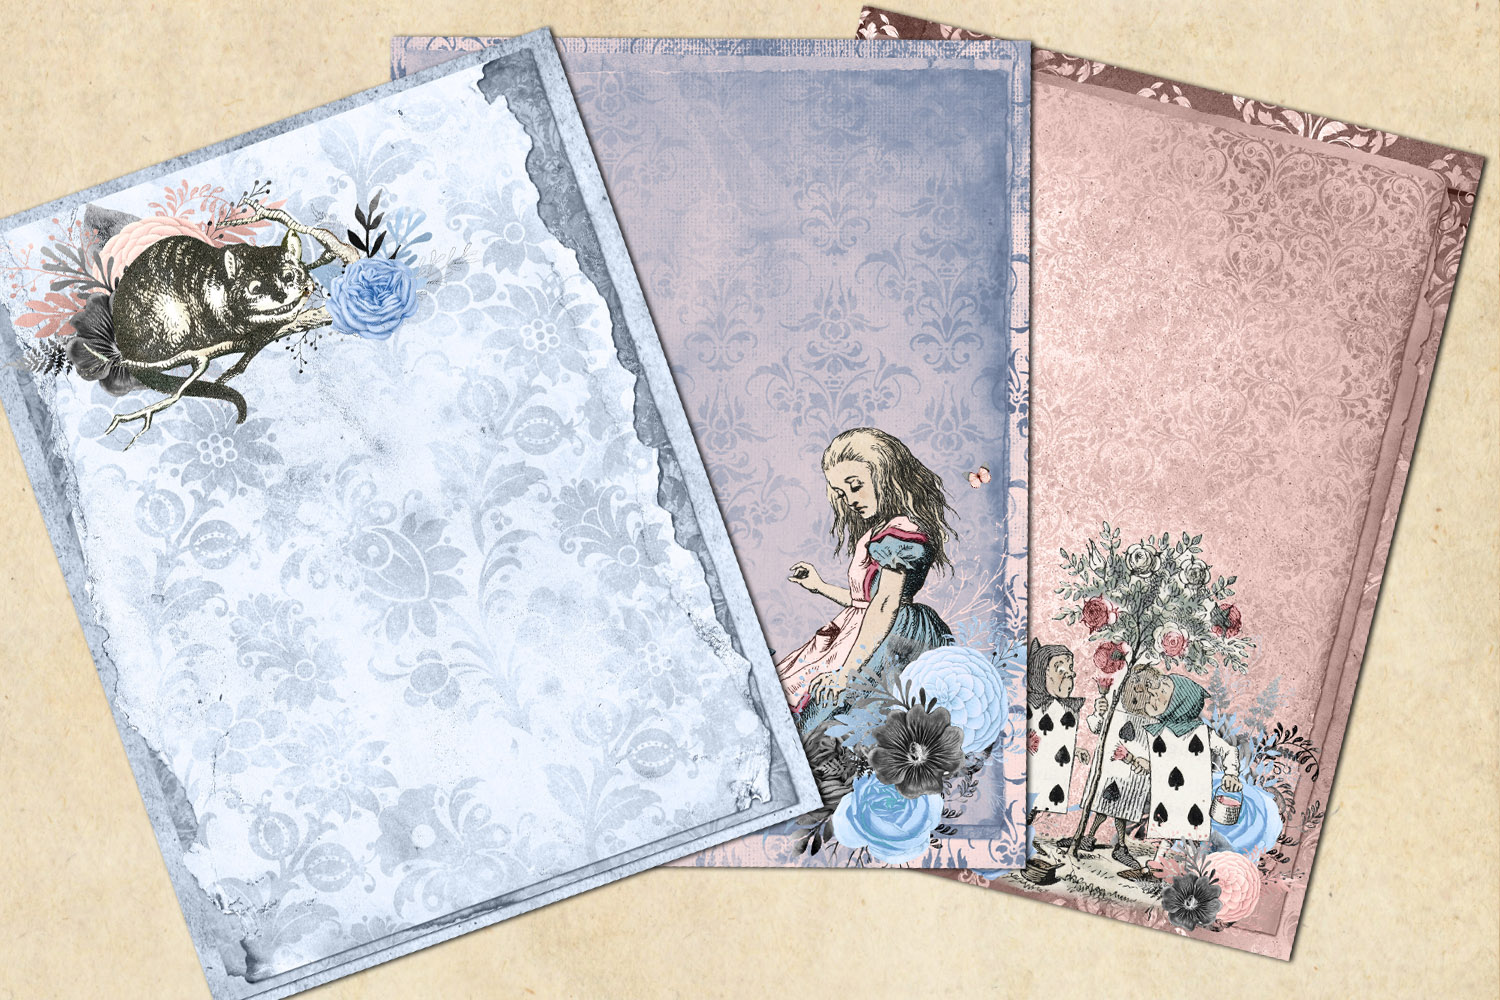 Dusty Blue and Blush Pink Alice in Wonderland Journal Paper example image 3